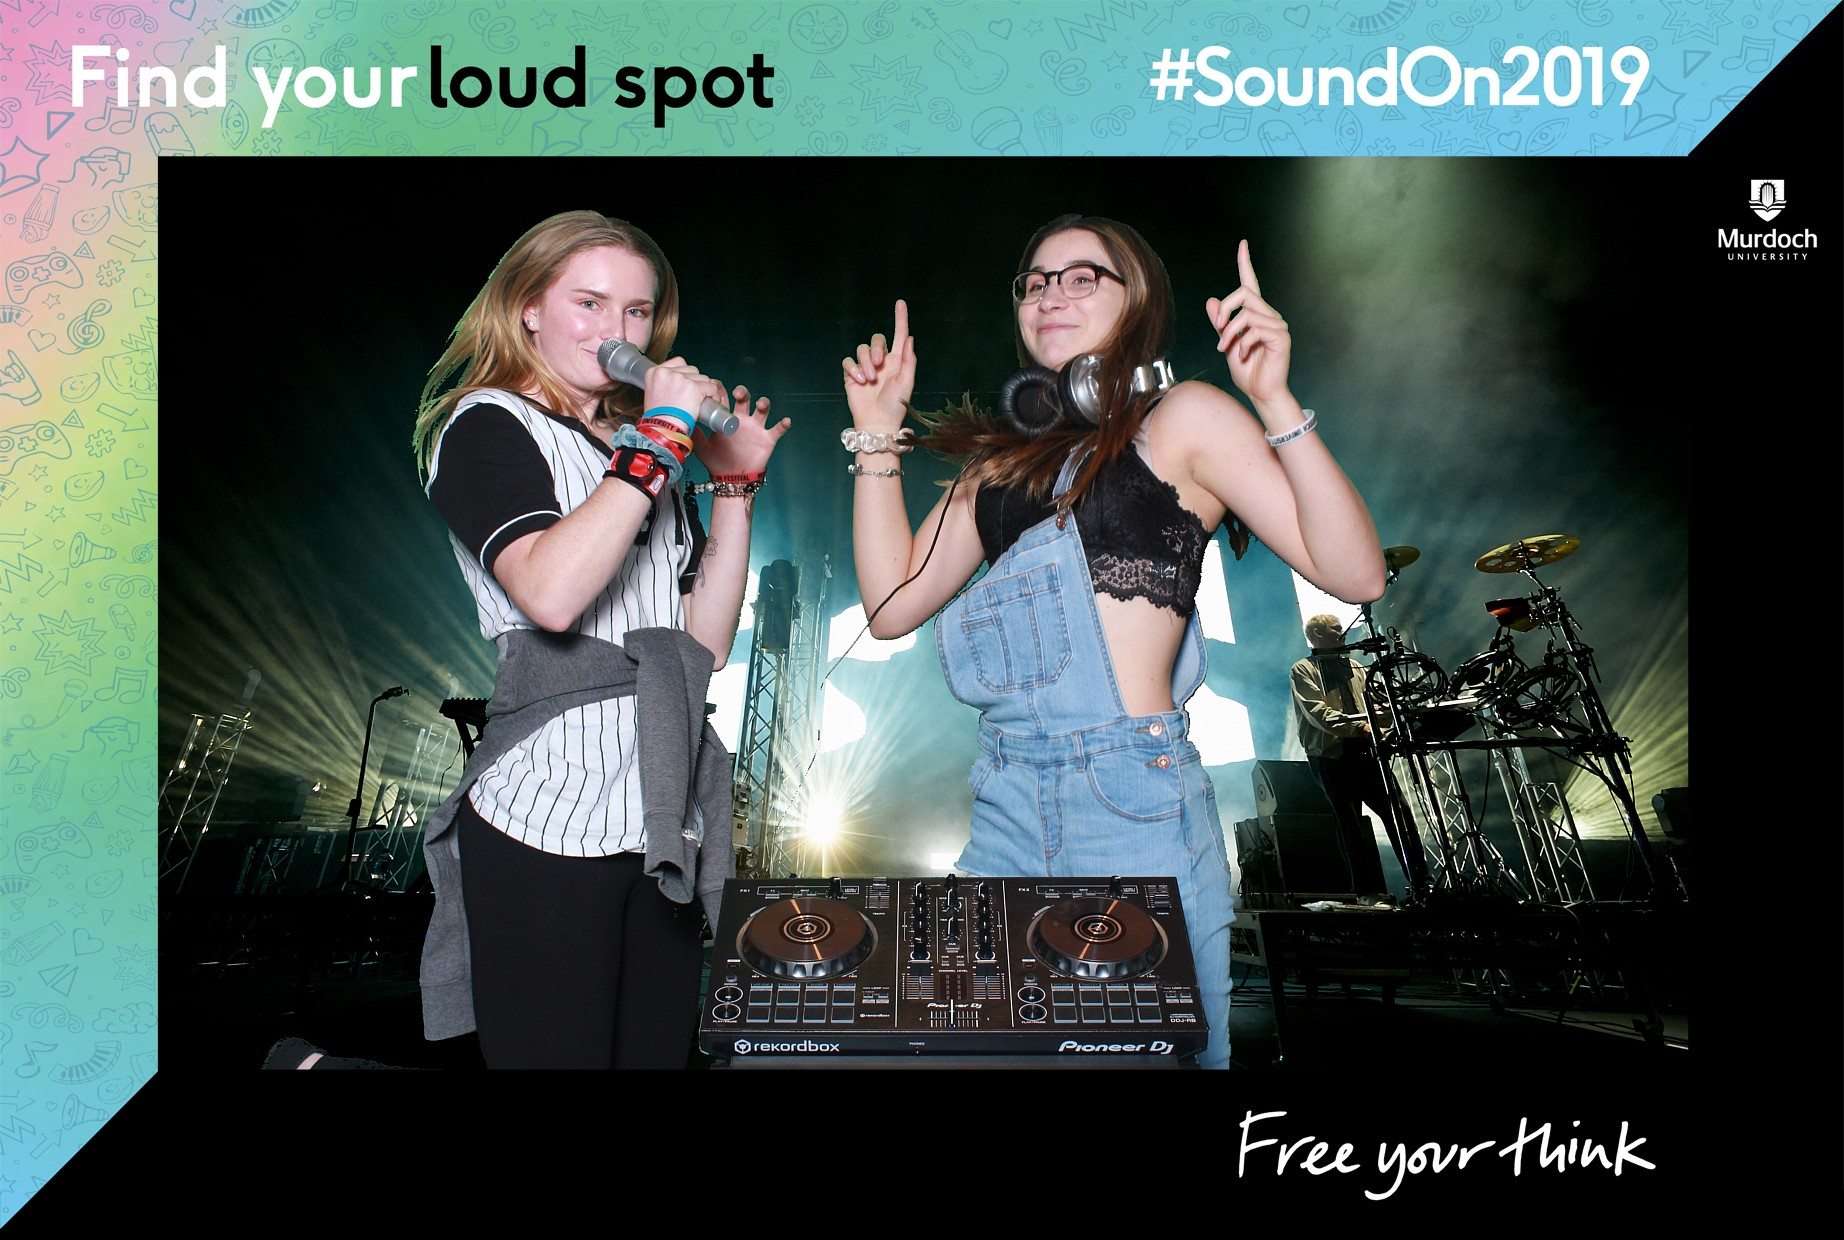 Green Screen Photo Booth - Sound On 2019